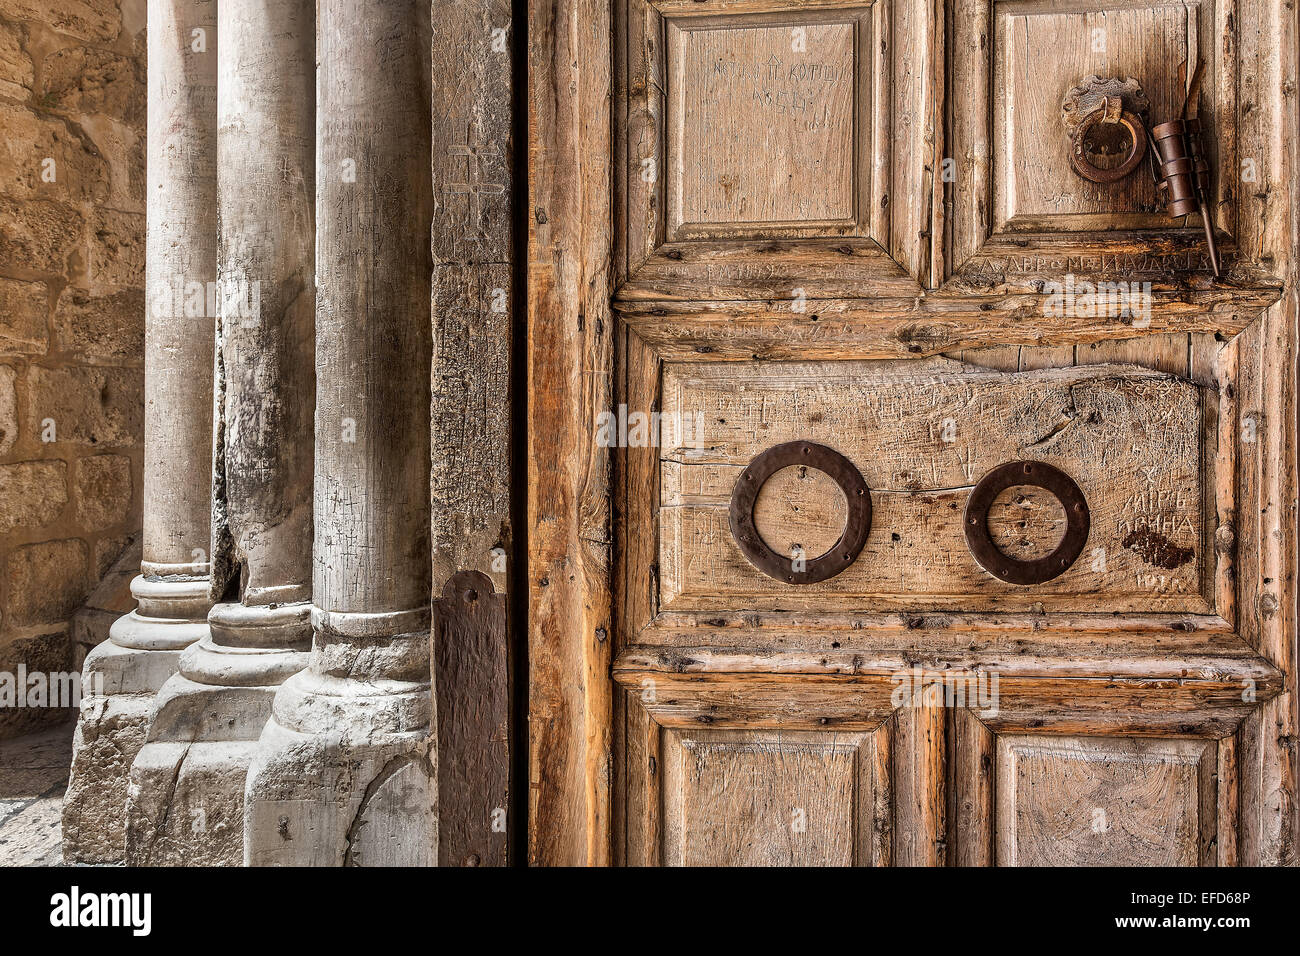 Ancient wooden door and marble pillars at the entrance to Church of the Holy Sepulcher in Jerusalem, Israel. - Stock Image